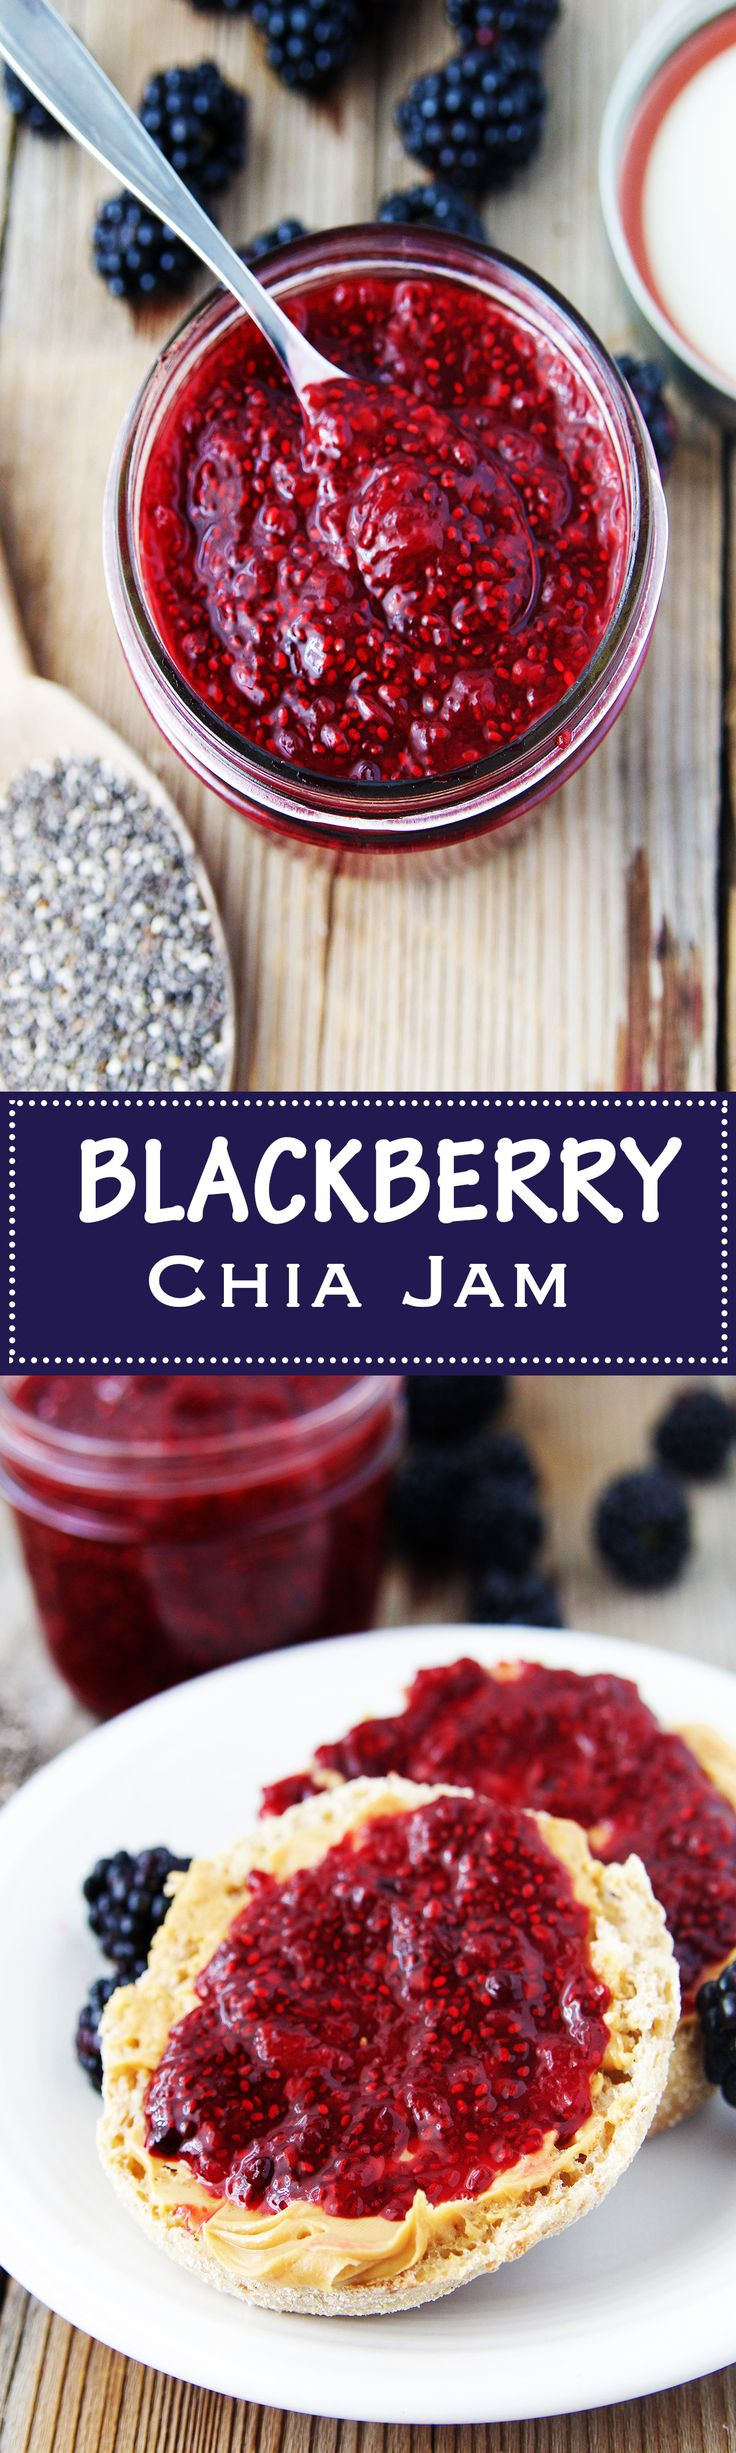 Blackberry Chia Jam is bursting with flavor and packed full of nutrients with a little help from the adorable chia seed.